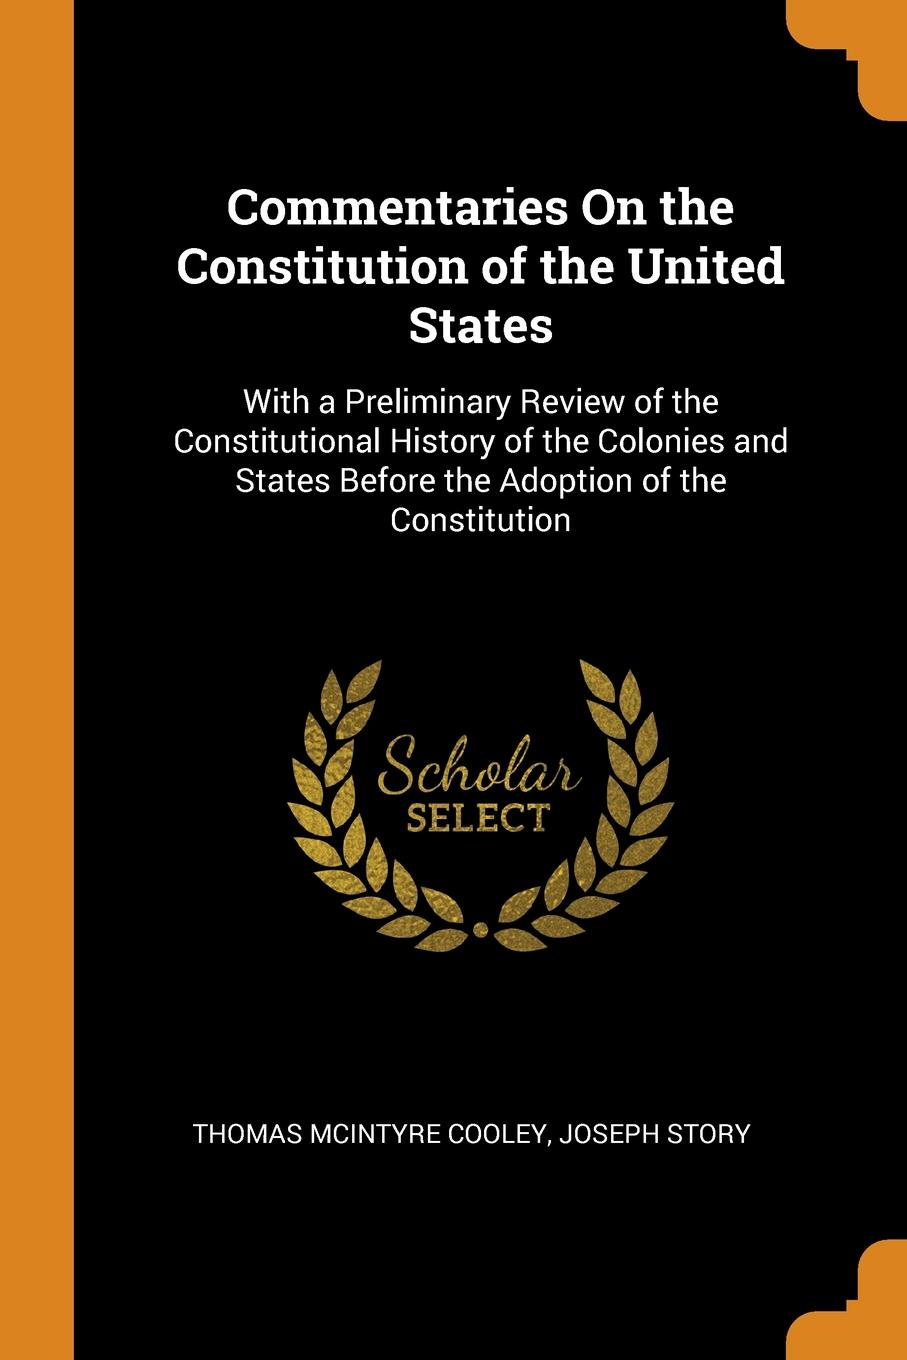 Commentaries On the Constitution of the United States. With a Preliminary Review of the Constitutional History of the Colonies and States Before the Adoption of the Constitution. Thomas McIntyre Cooley, Joseph Story